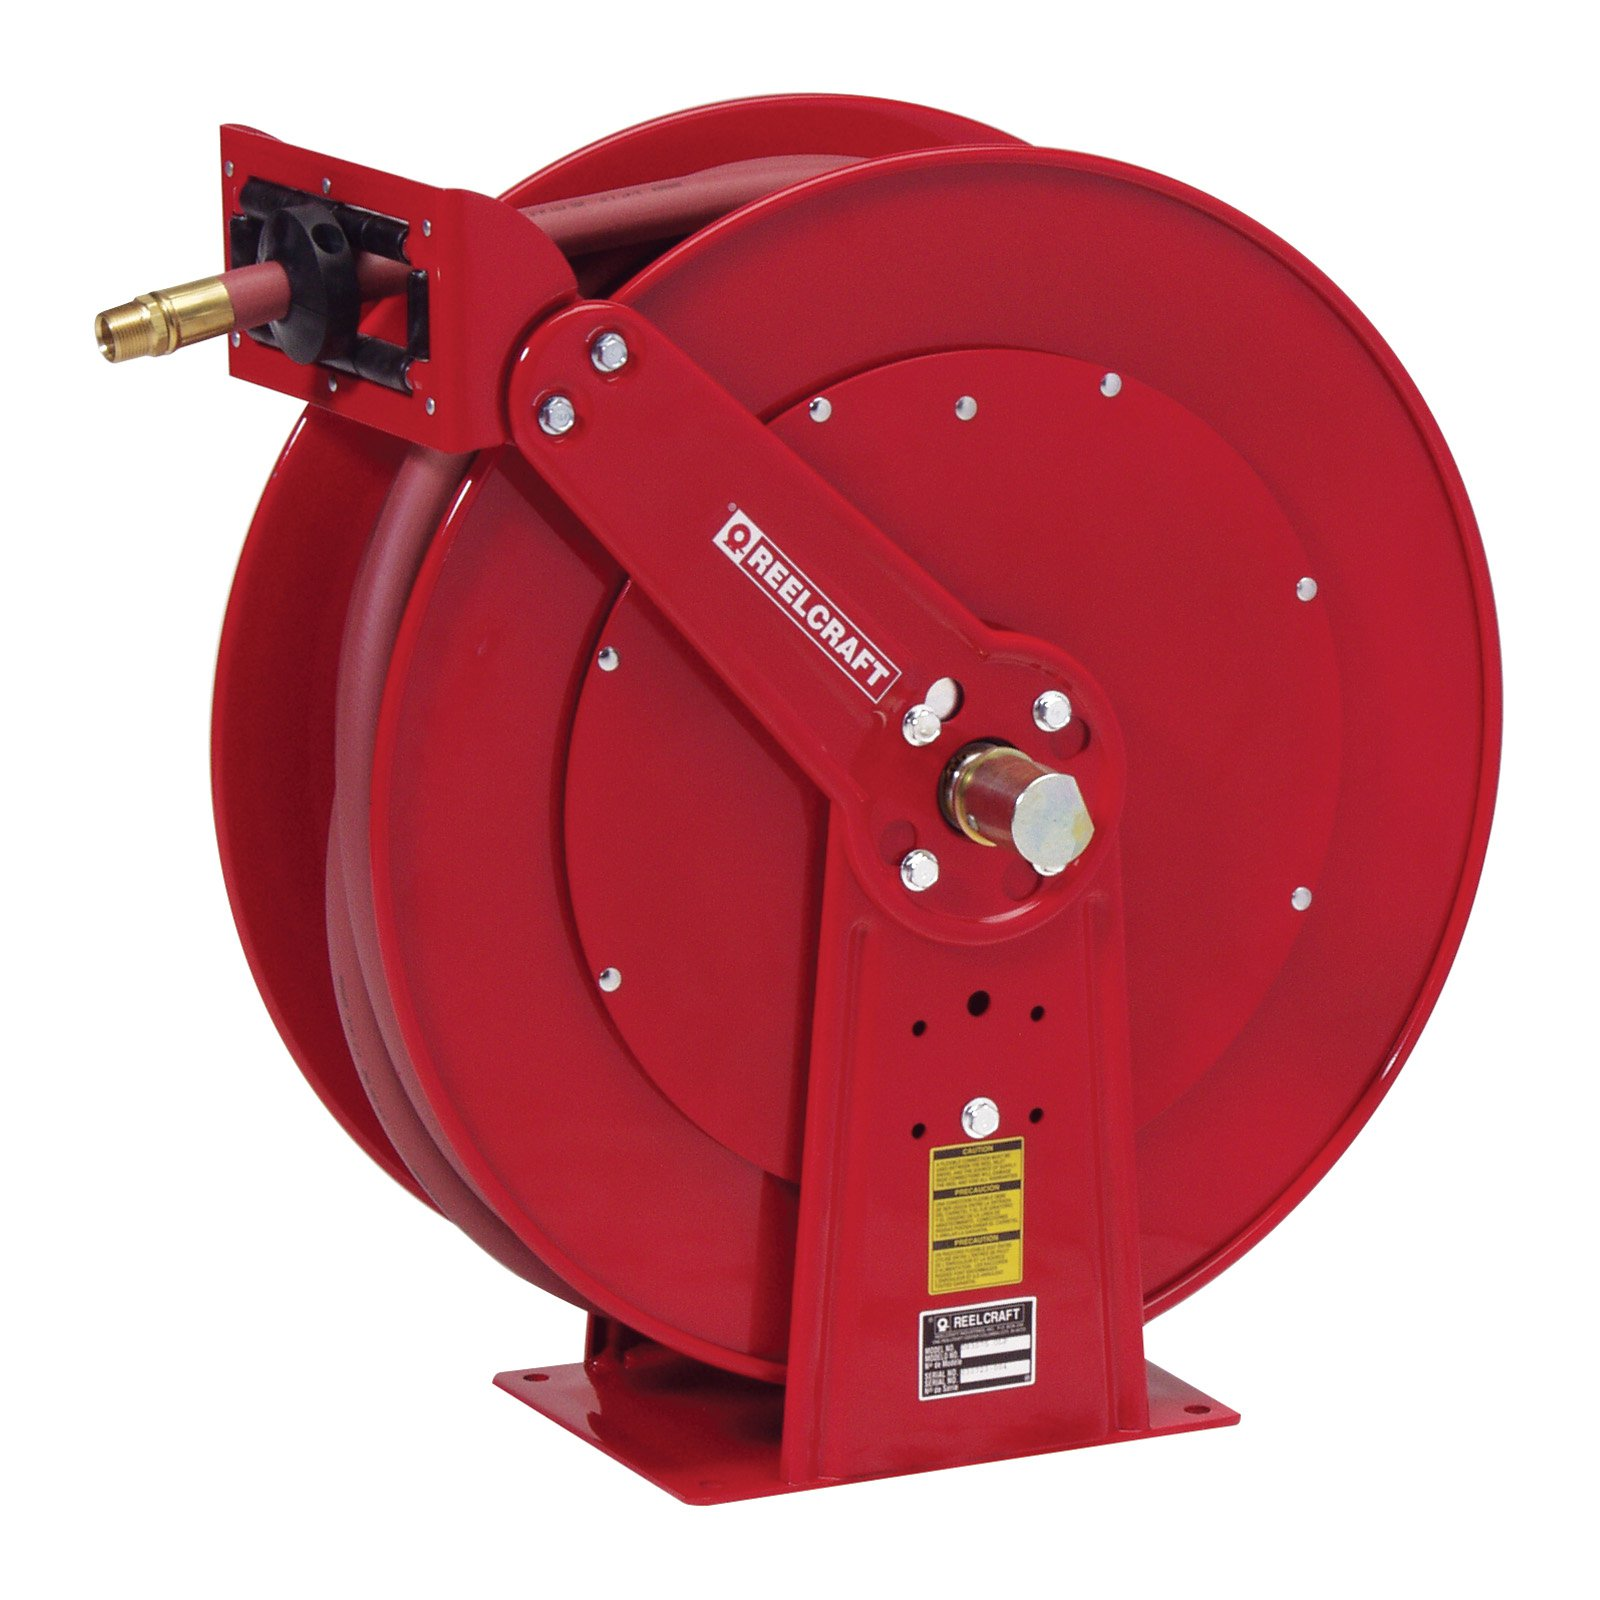 REELCRAFT D84050 OLP1 Hose Reel, 1 In., 50 ft. L, 250 psi, 150F by Reelcraft